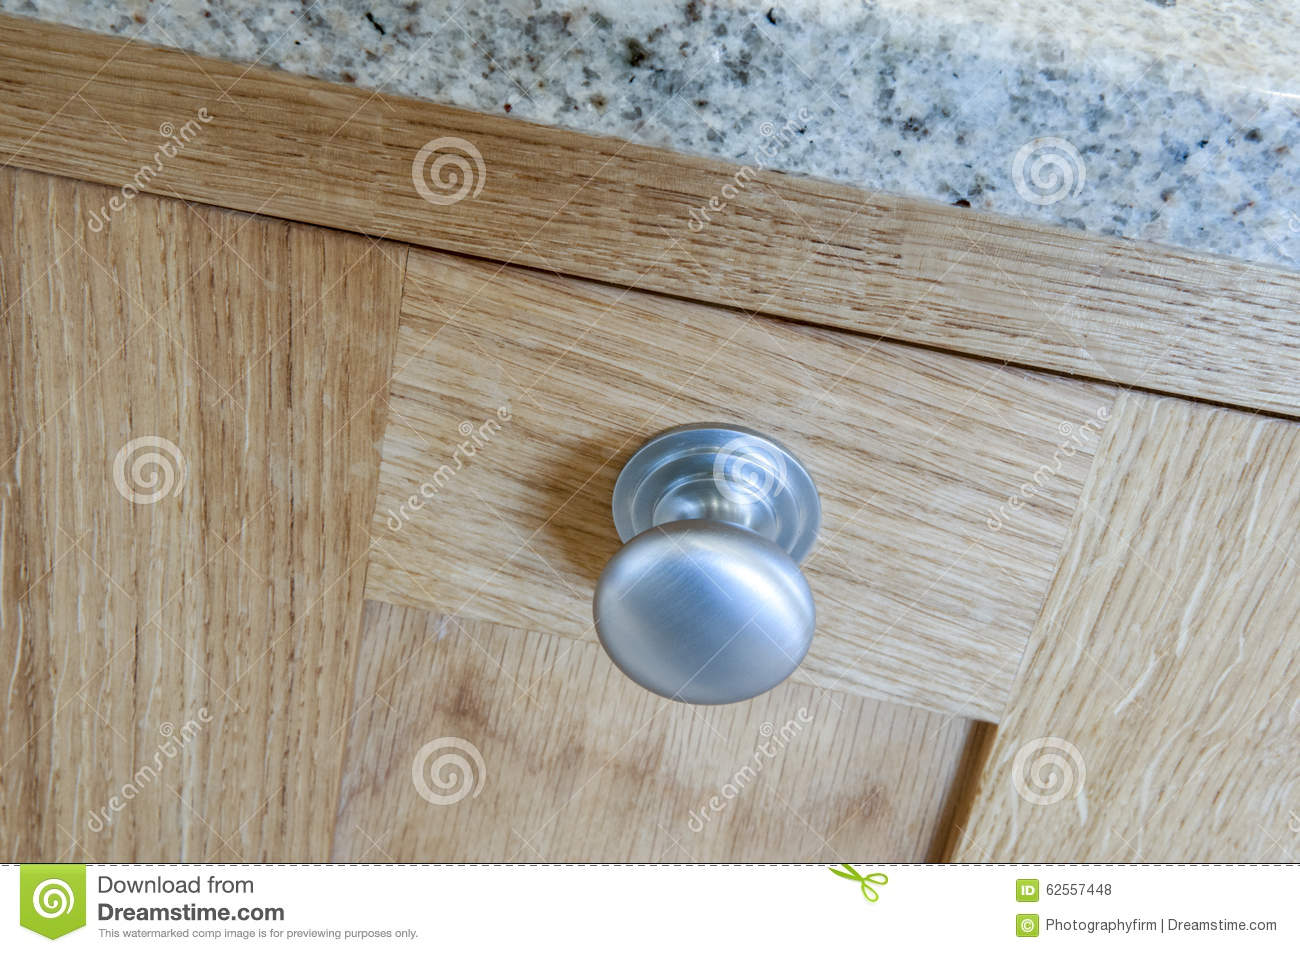 boutons de placard de cuisine photo stock image 62557448. Black Bedroom Furniture Sets. Home Design Ideas